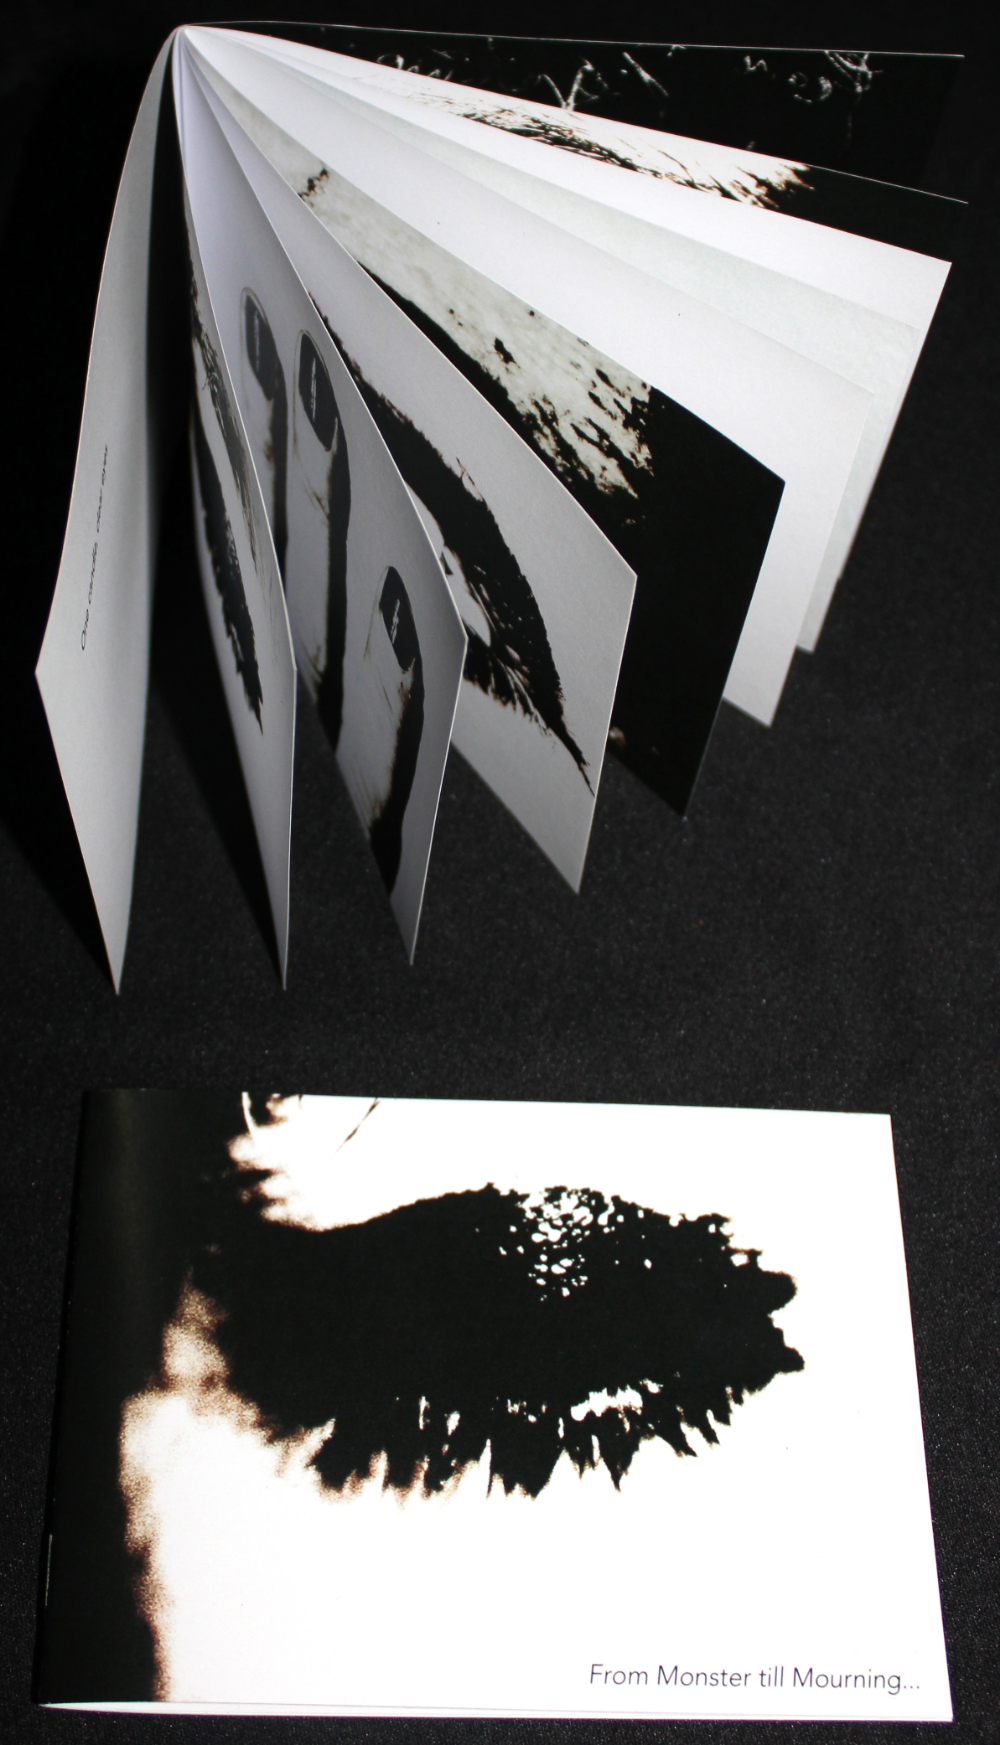 Booklet By SSL - photos and artwork by Angela Nina Yeowell and Robert Heim